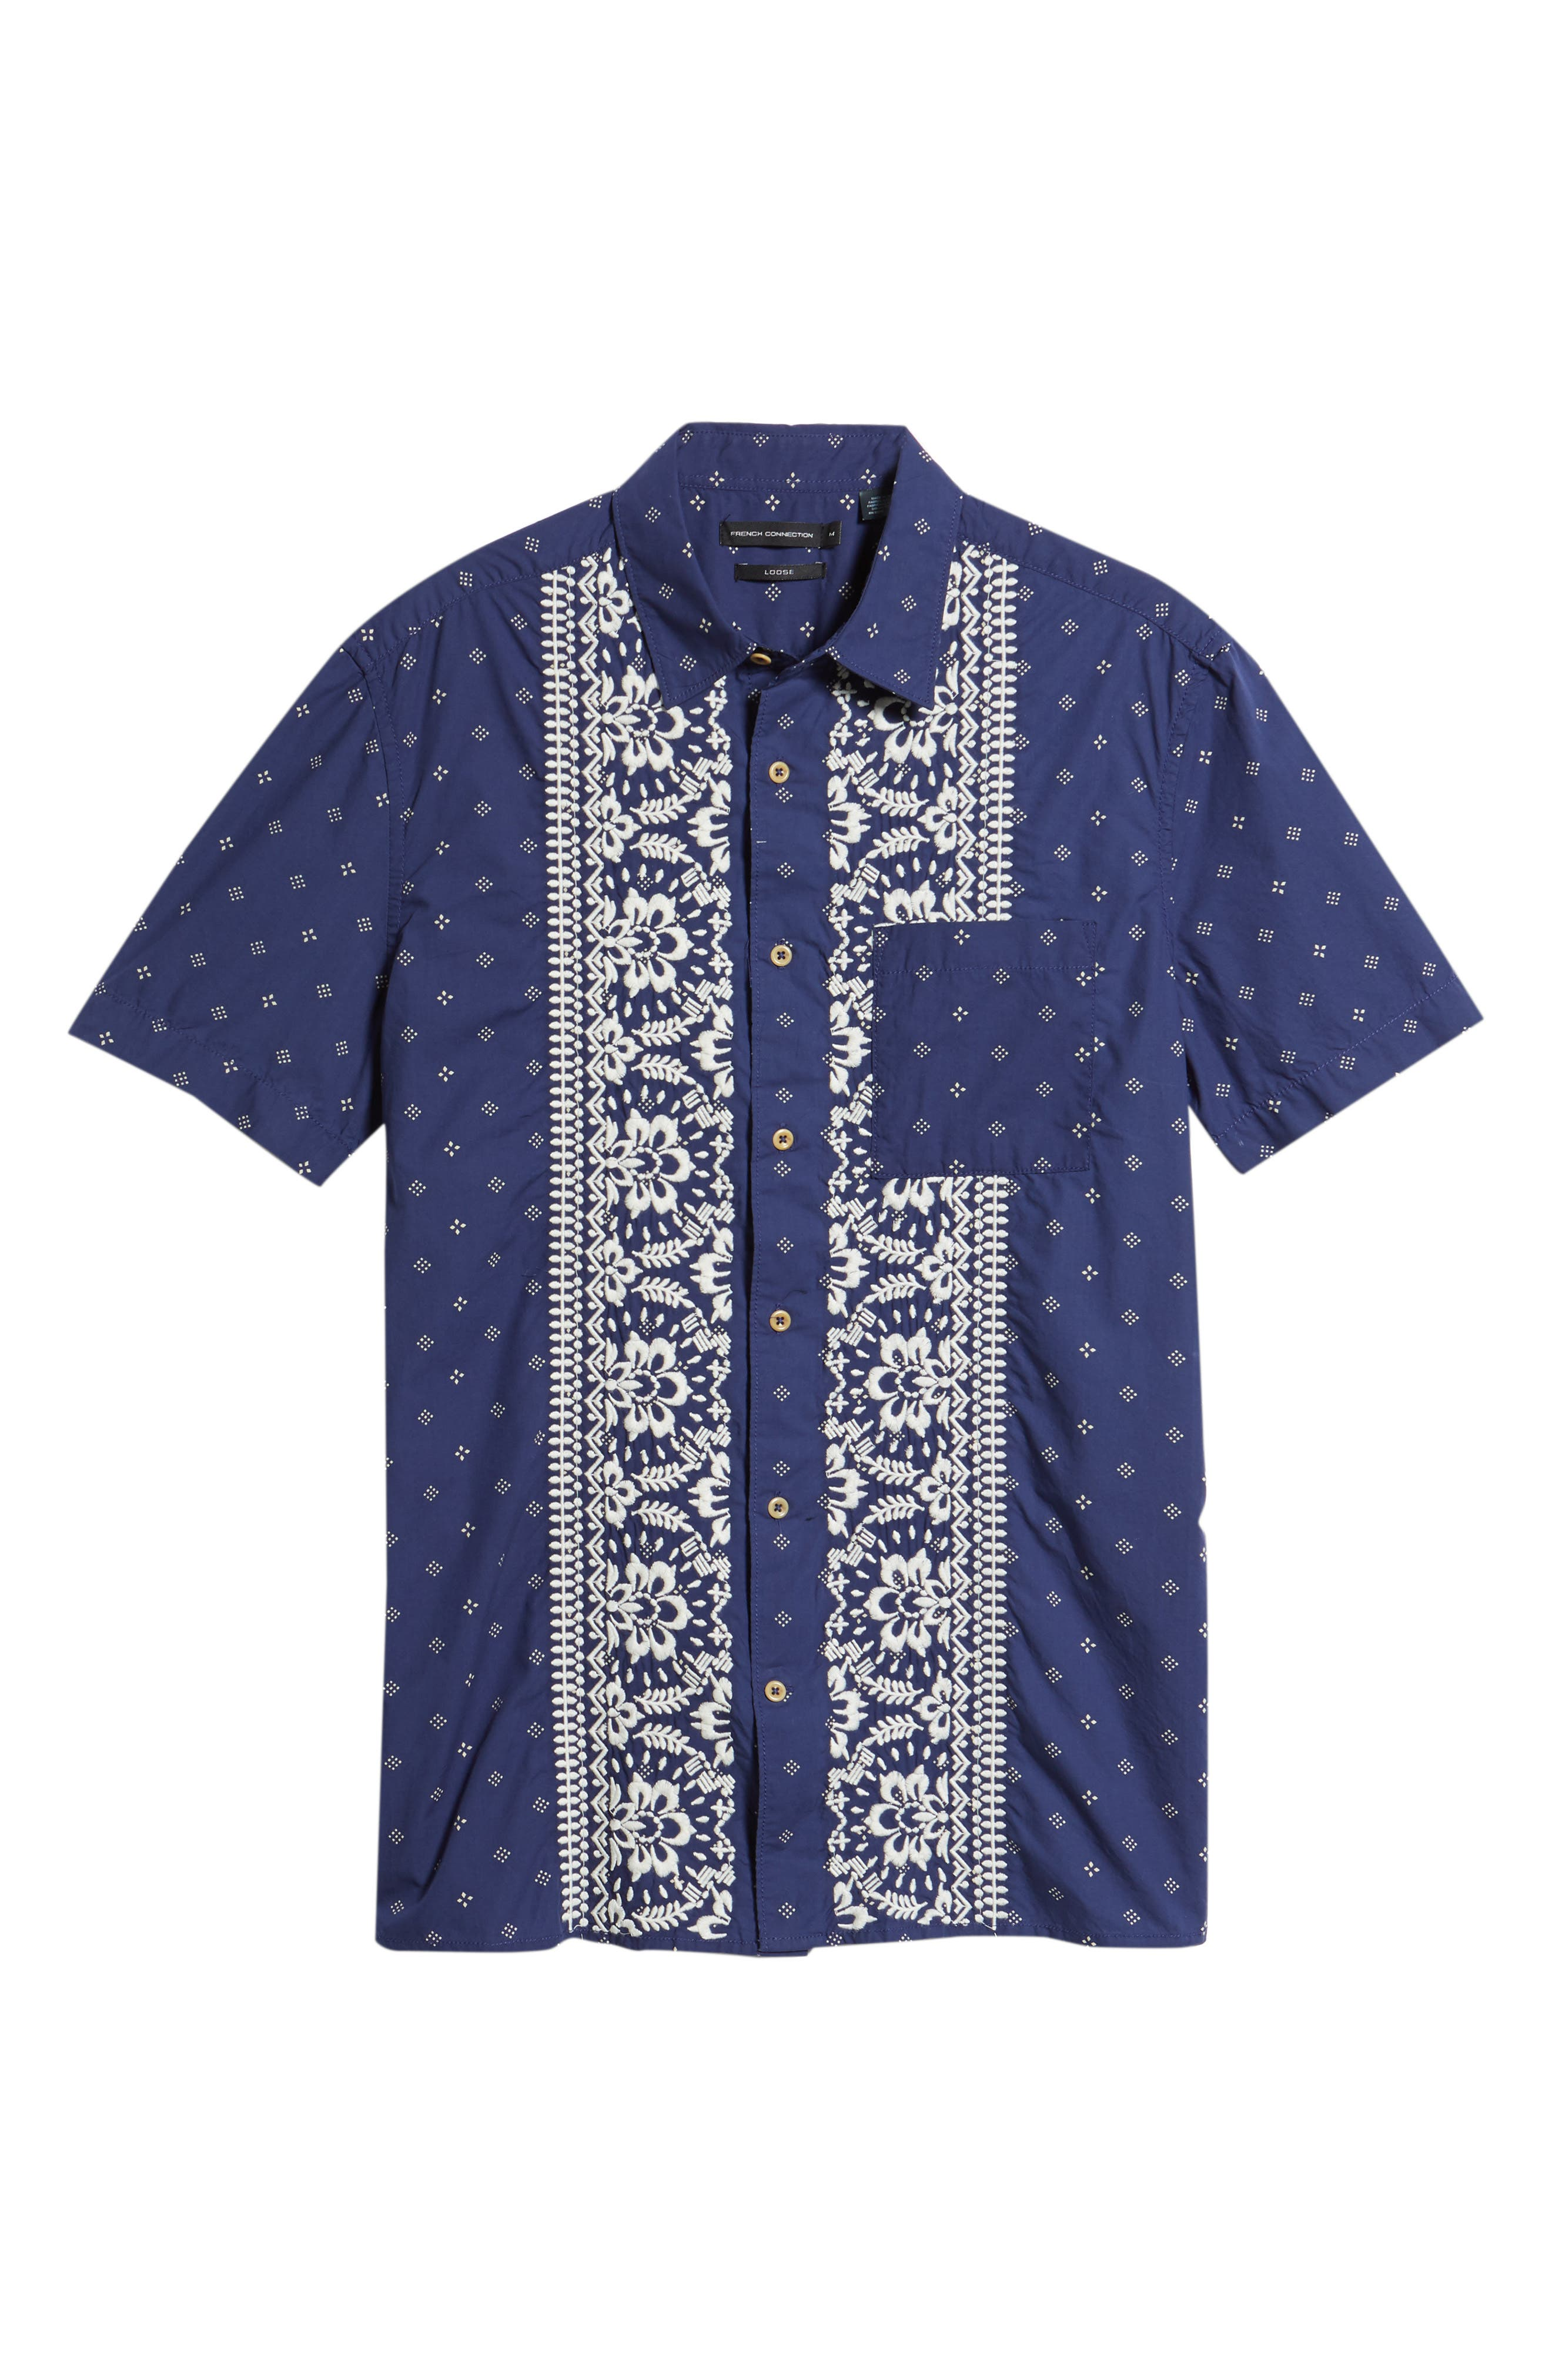 Iki Lawn Embroidered Shirt,                             Alternate thumbnail 6, color,                             Patriot Blue Turtle Dove